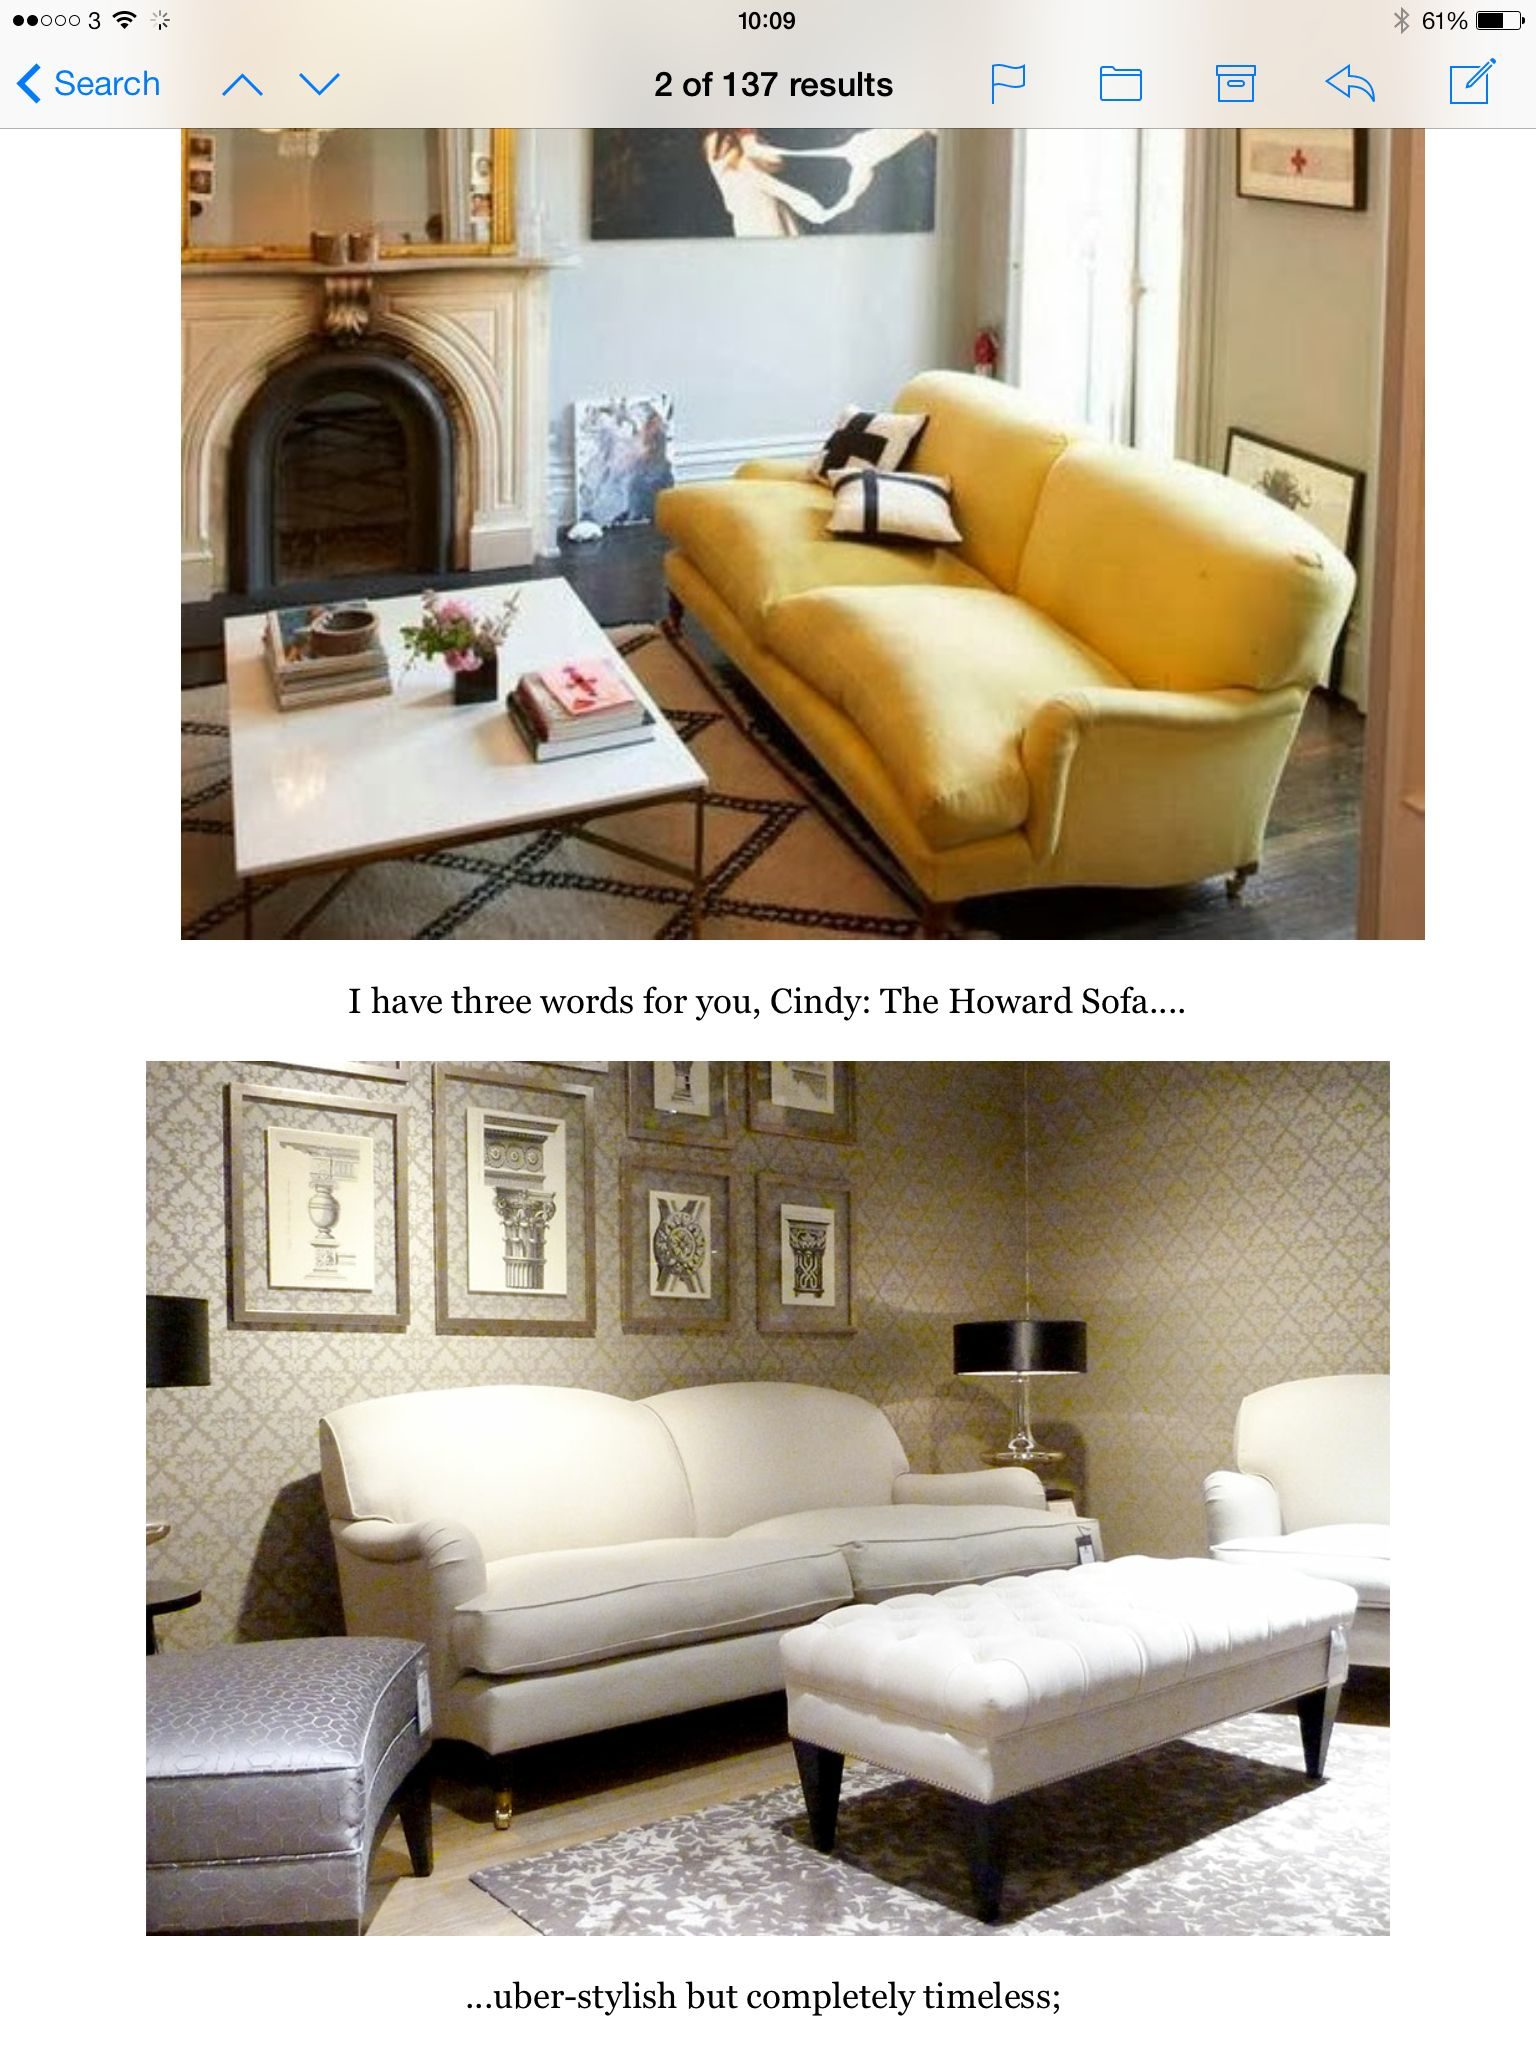 Living Room Ideas Ebay the howard sofa, timeless, limitless upholstery ideas, ebay then